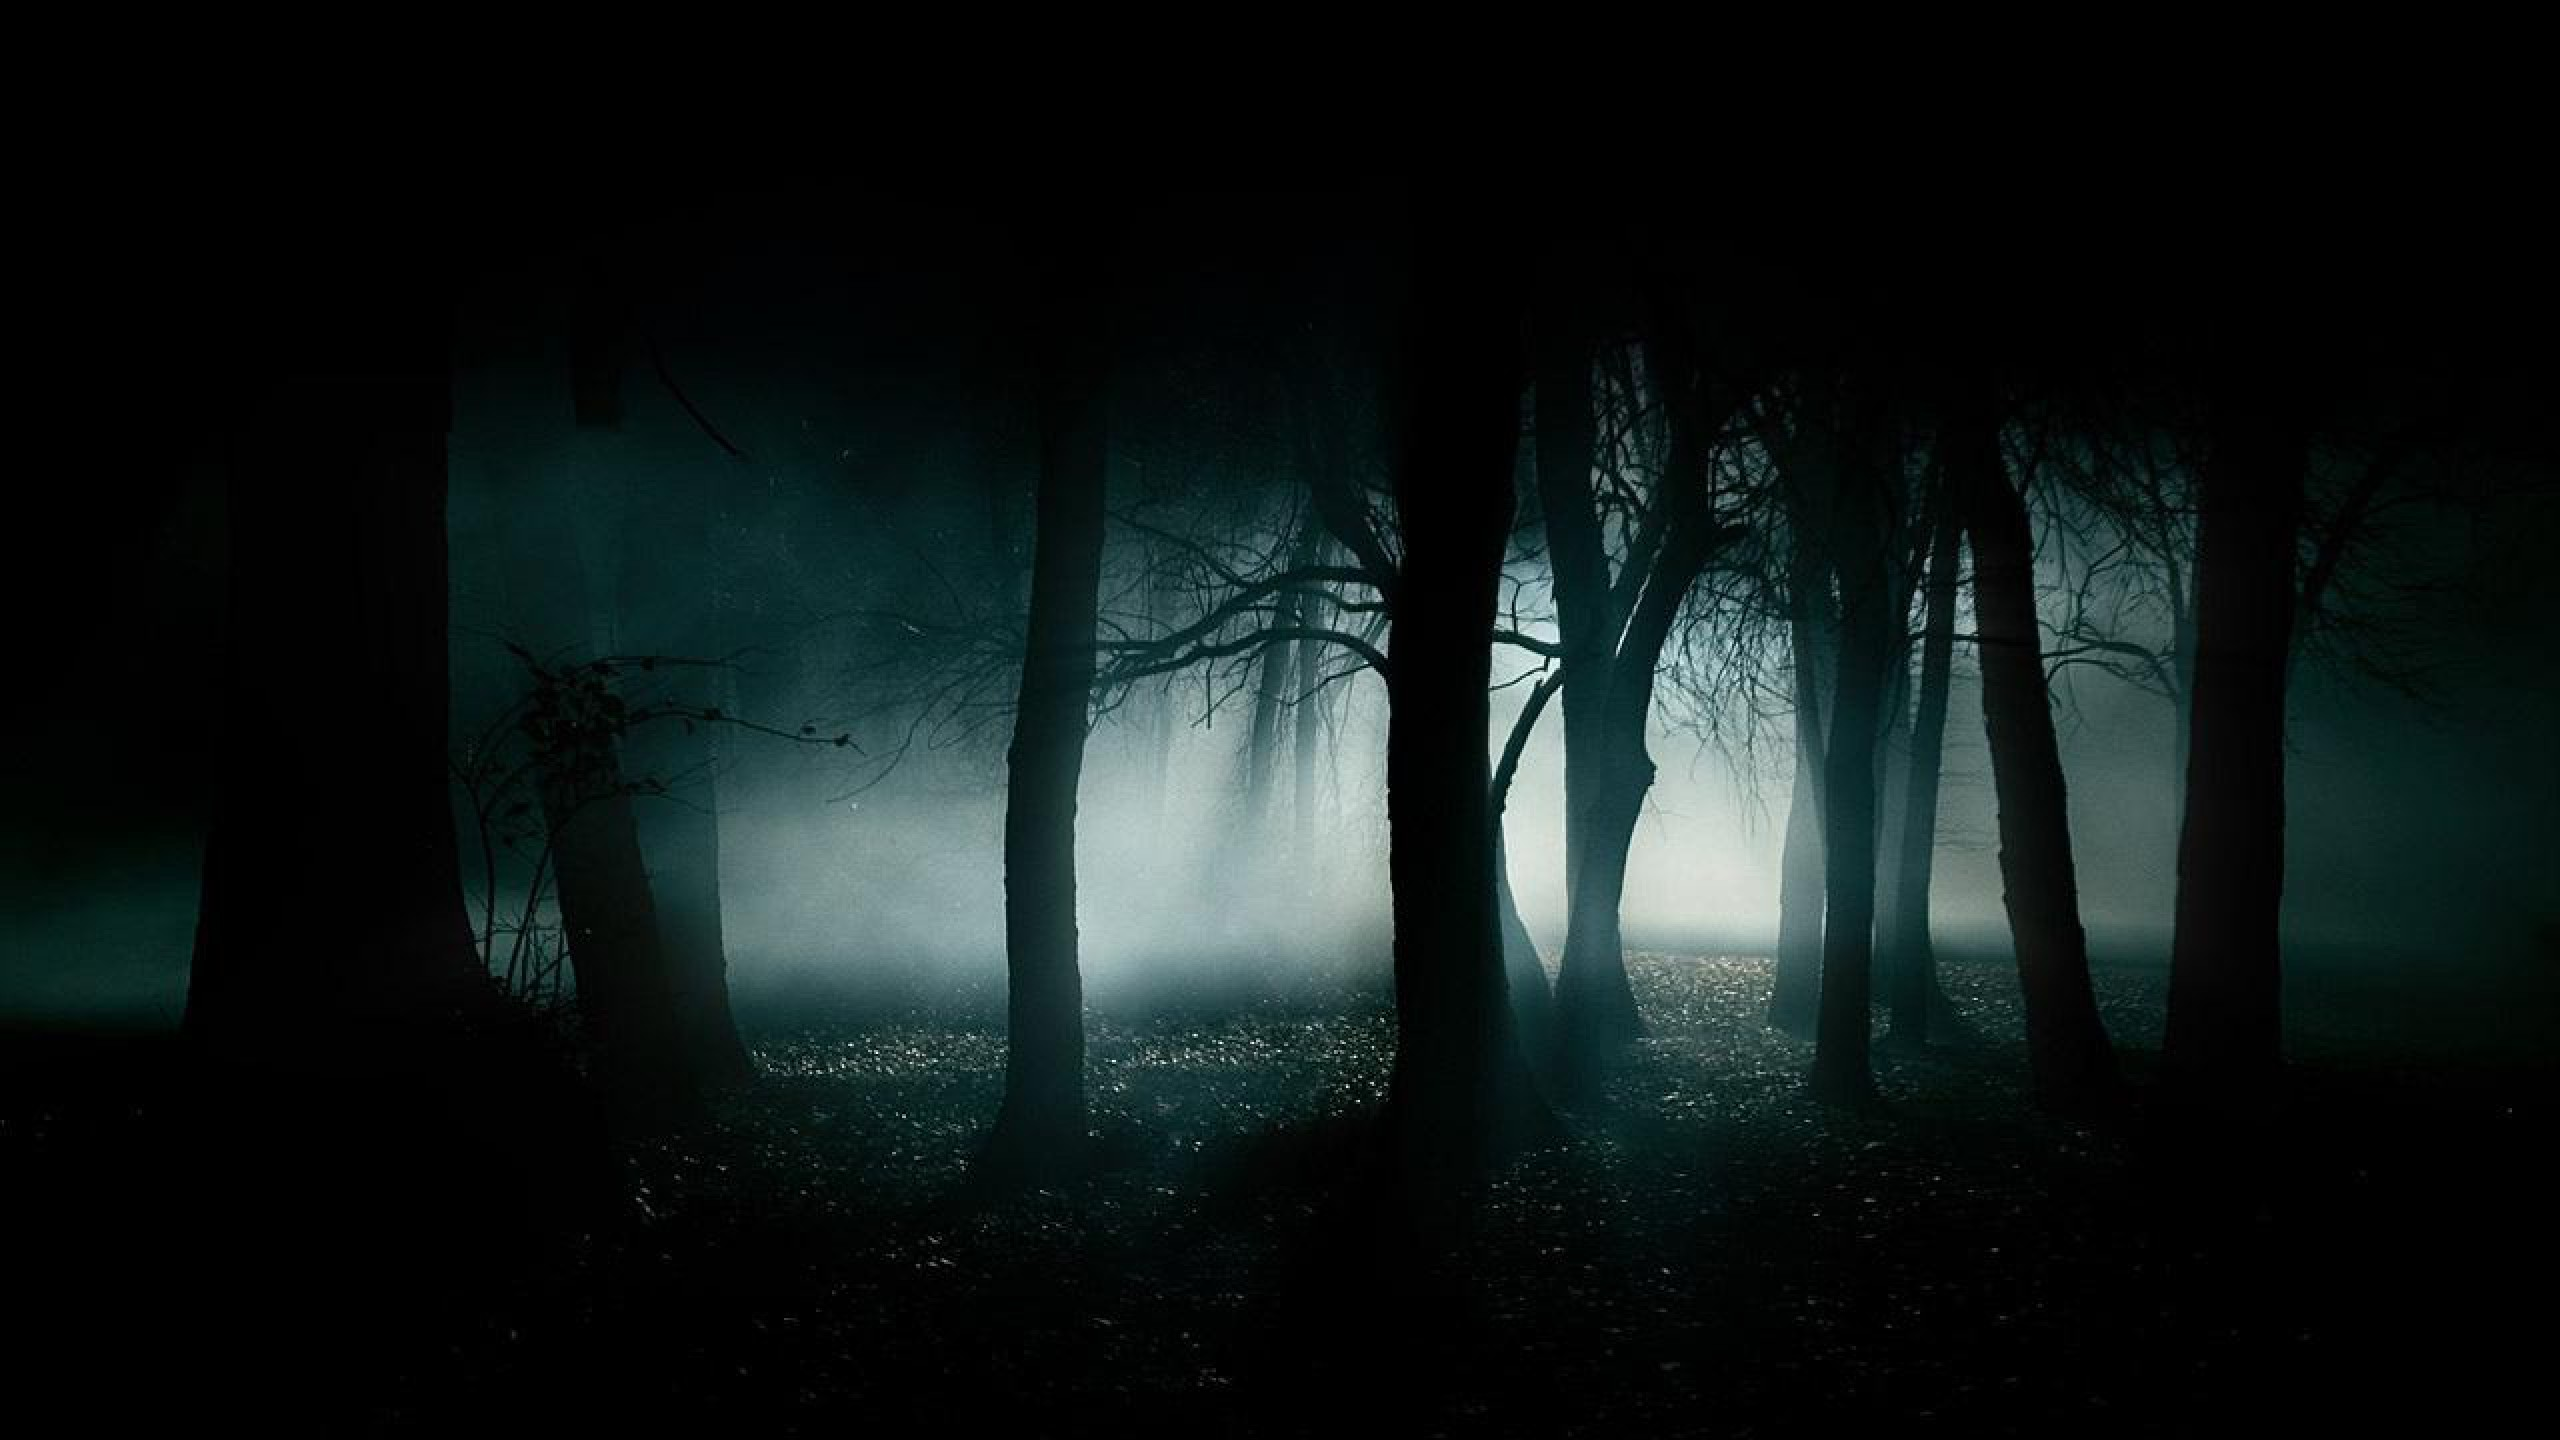 Dark Forest Background Tumblr Images amp Pictures   Becuo 2560x1440